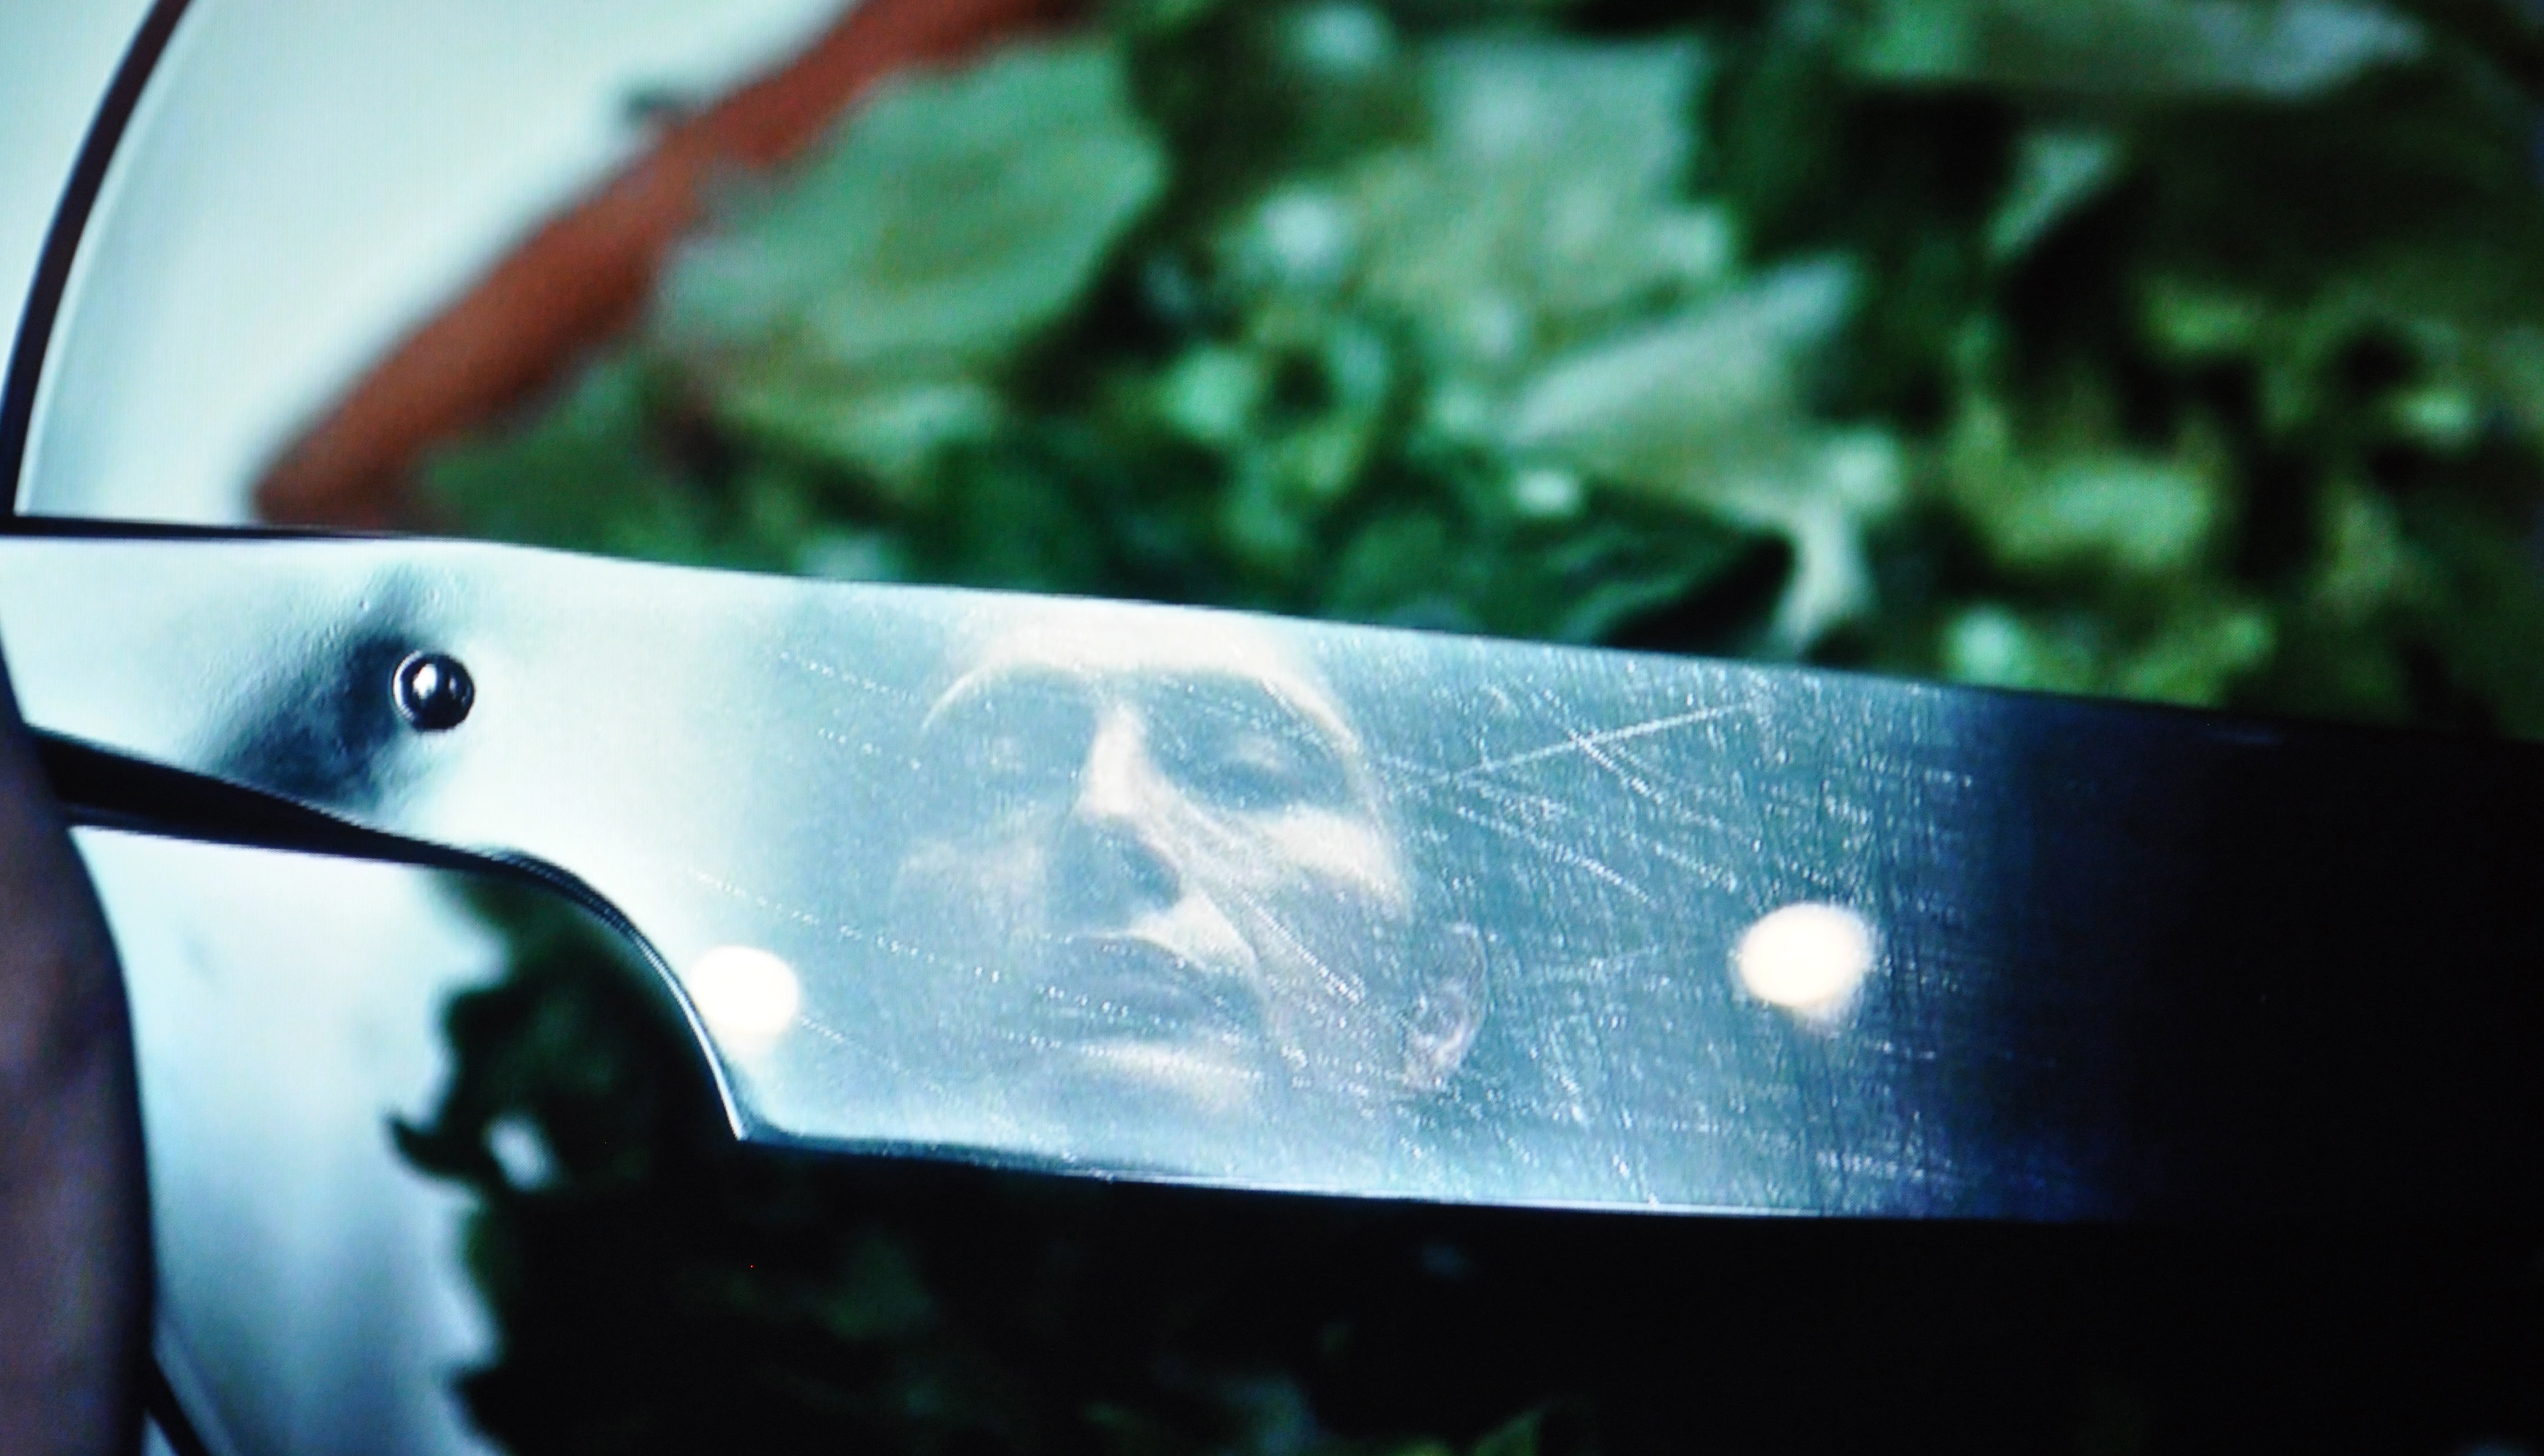 Hannibal Lecter Knife